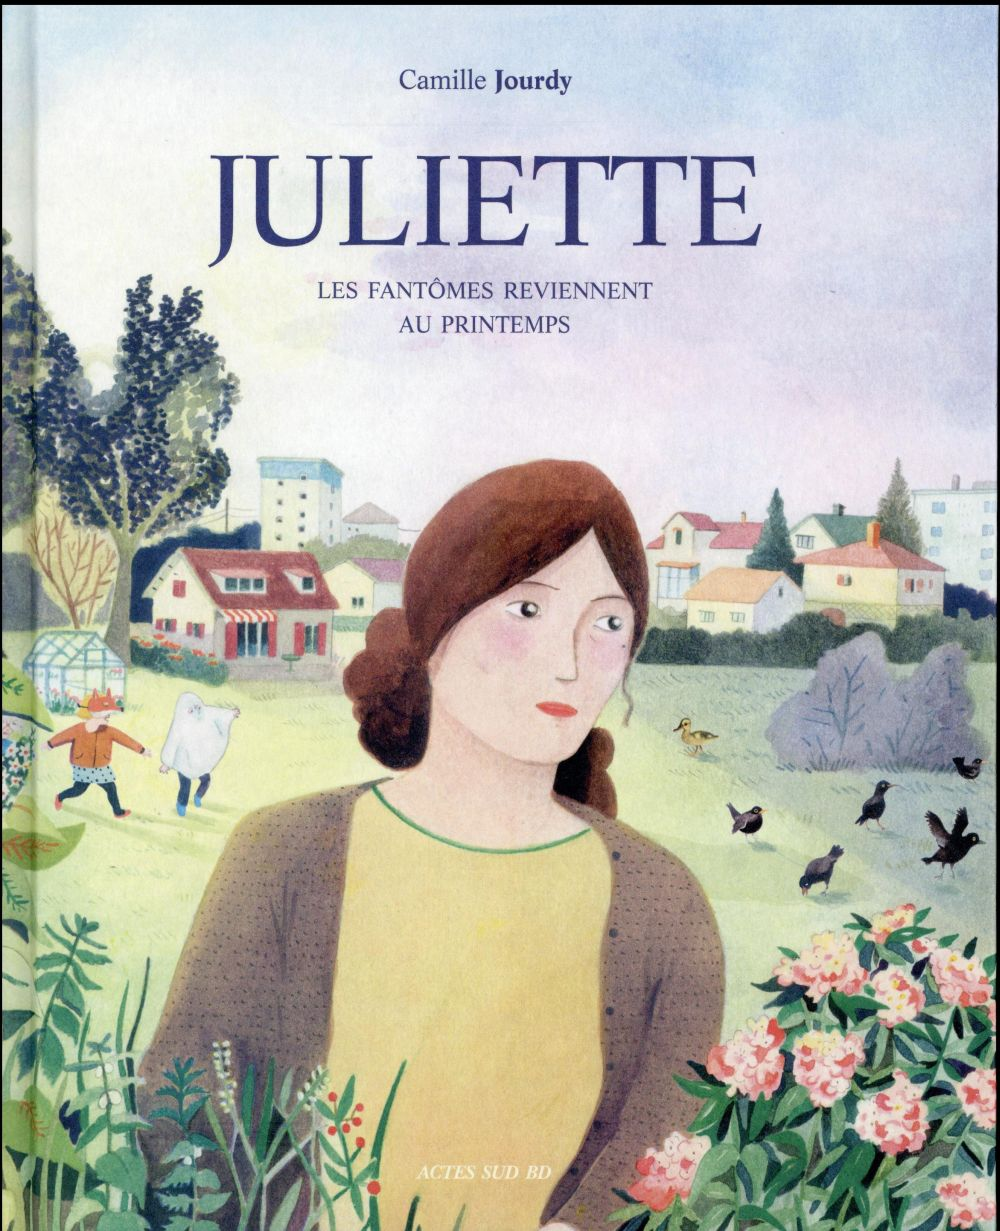 JULIETTE - LES FANTOMES REVIENNENT AU PRINTEMPS